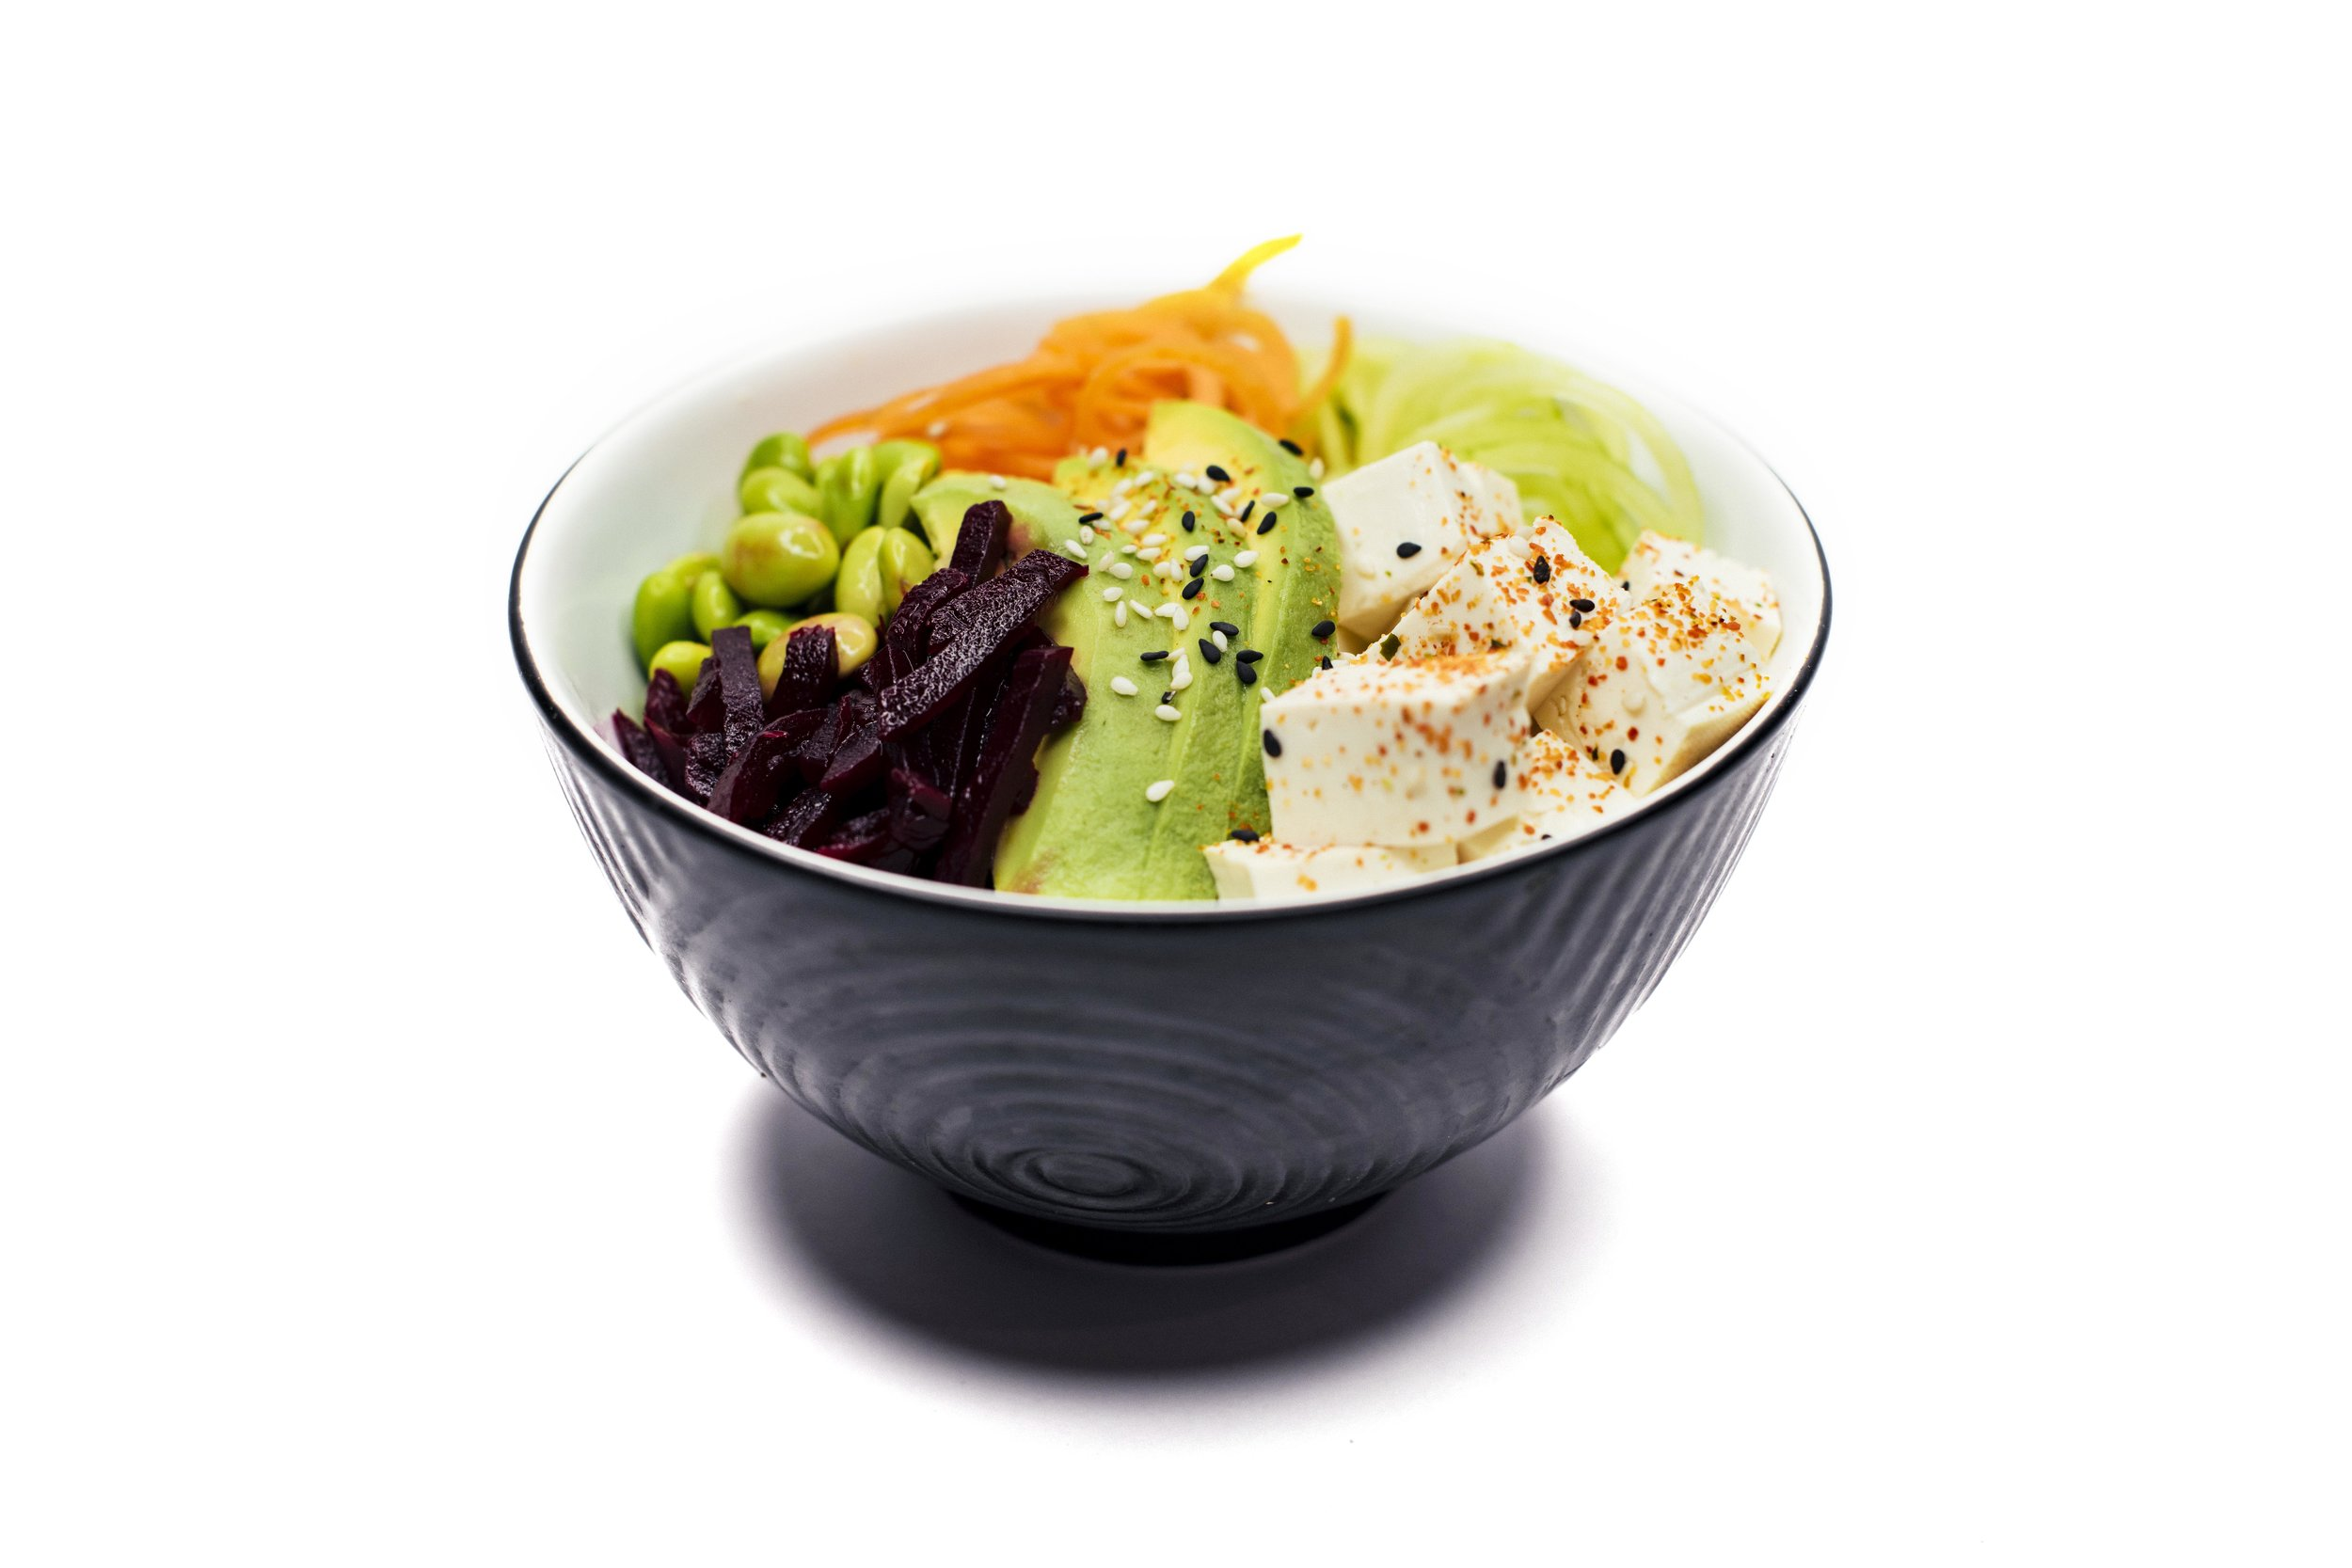 TOFU BOWL - Tofu, Rice, Cucumber, Edamame Beans, Carrot, Pickled Beetroot, Avocado, Creamy Wasabi Sauce